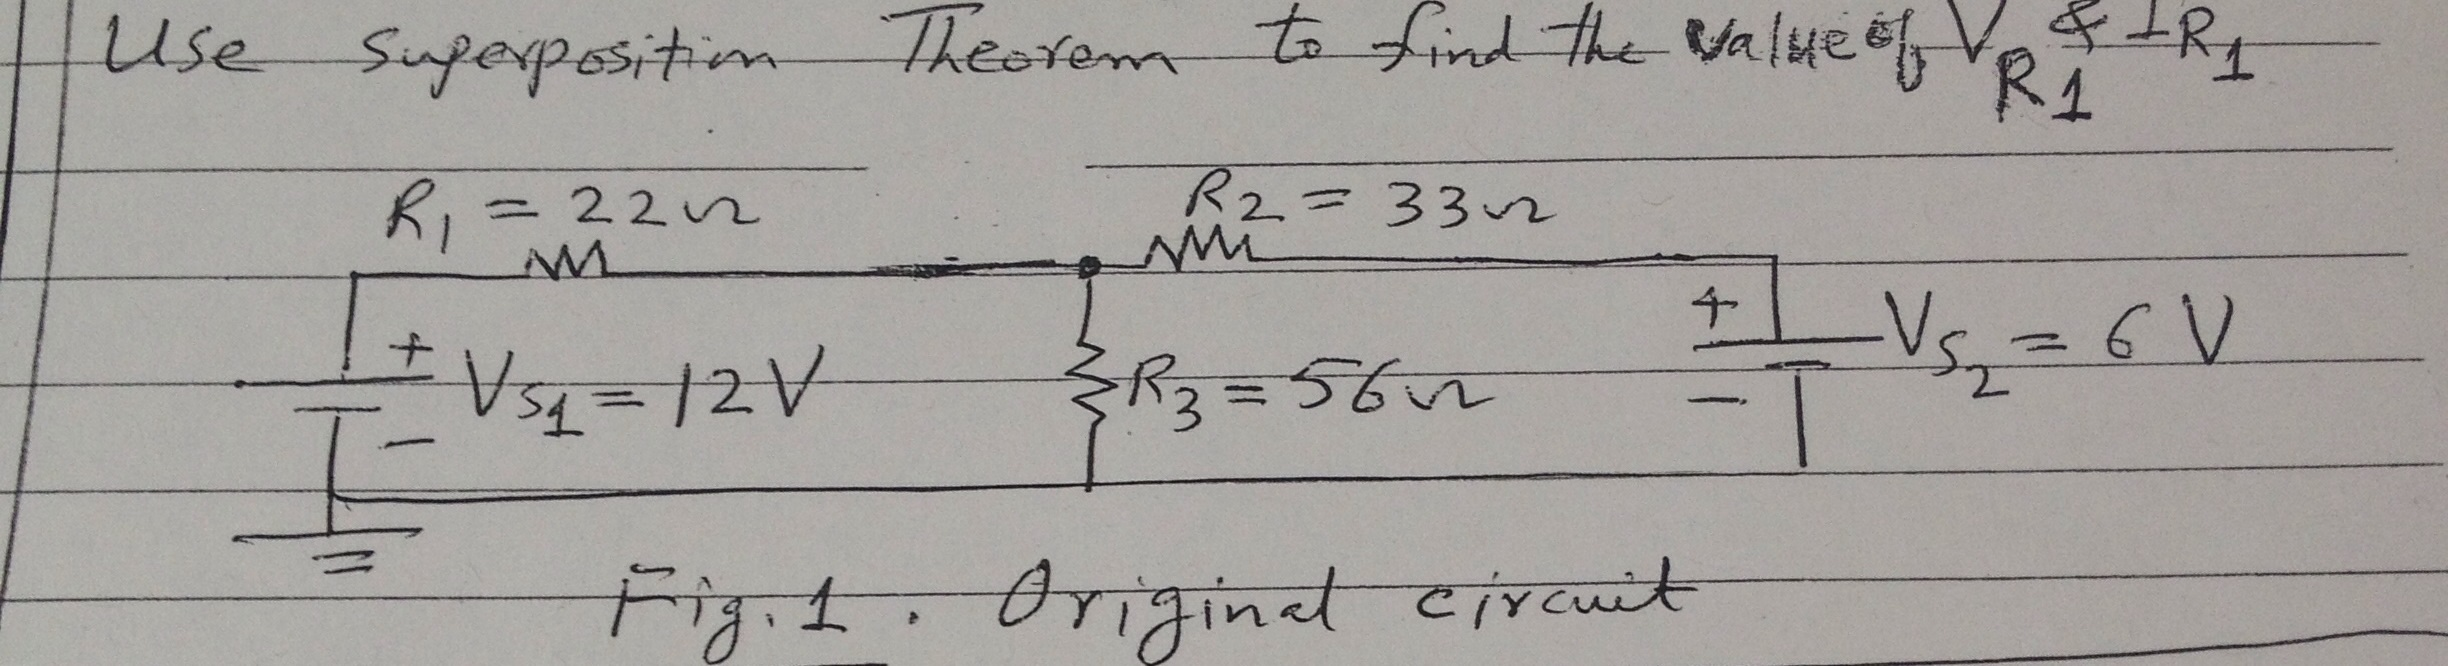 Use superposition theorem to fin the value of VR1